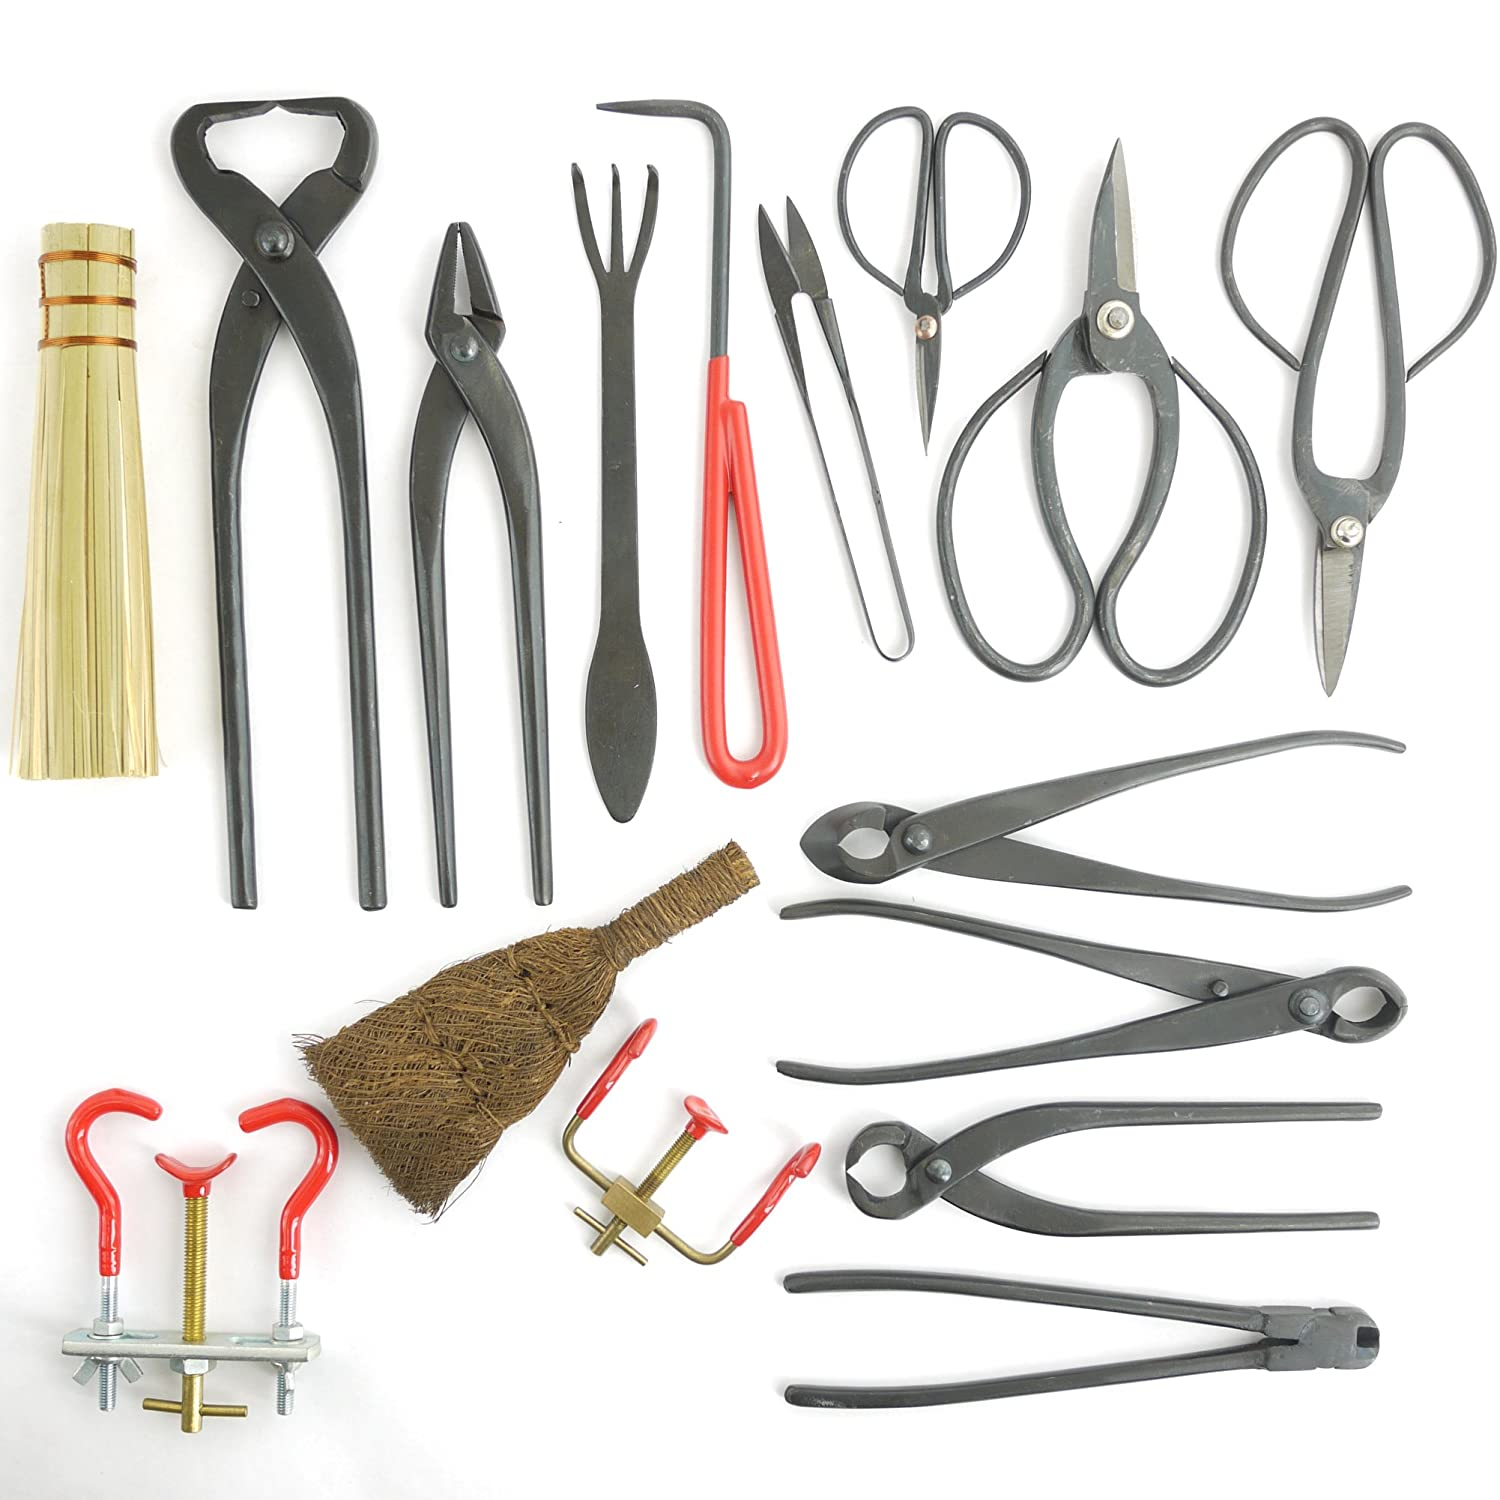 BambooMN Bonsai Kit 16pc Master Tool Set